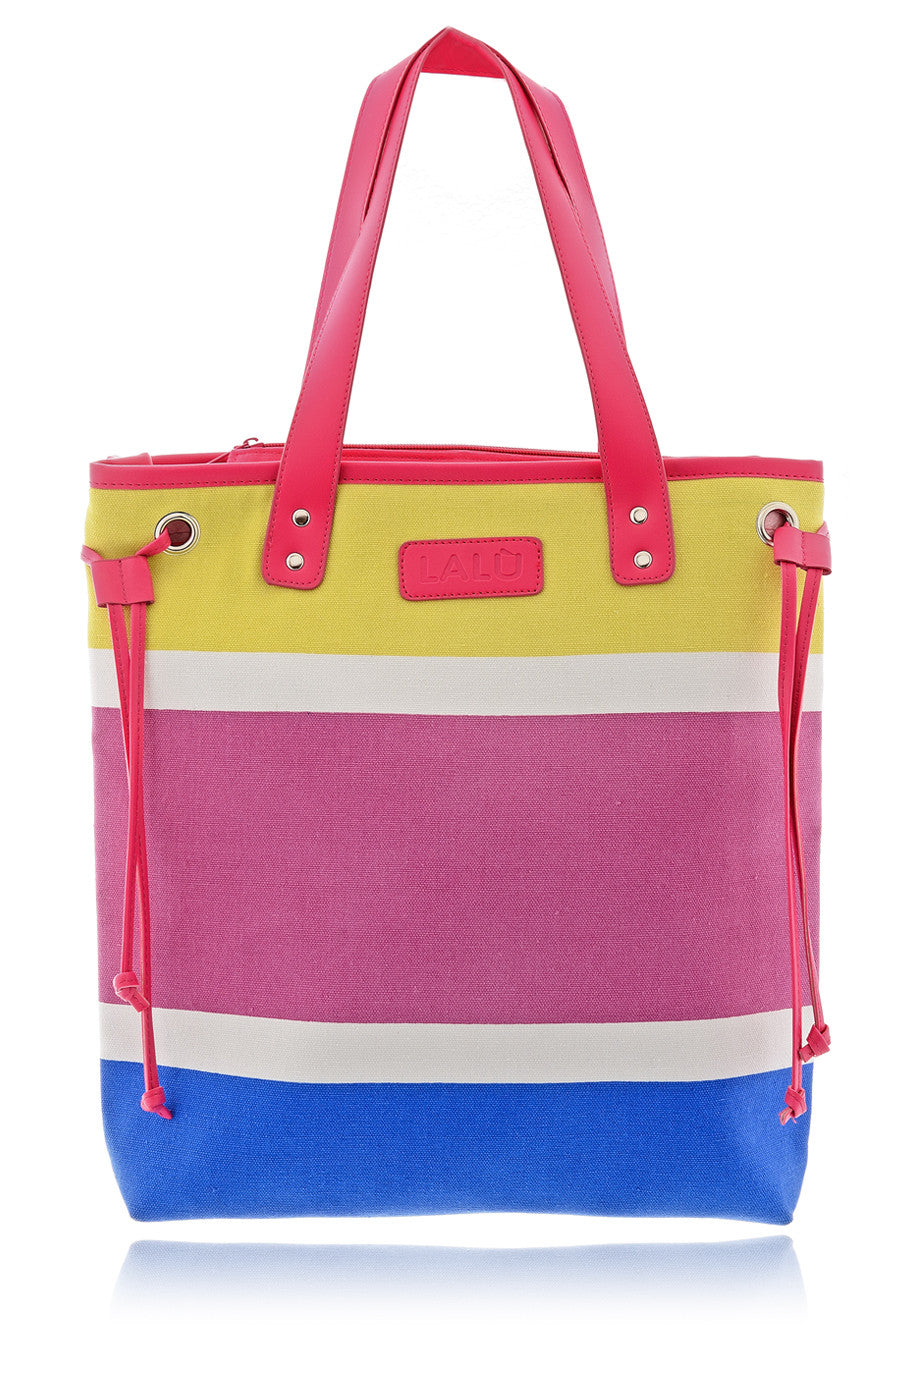 LALU - LARINE Color Block Shoulder Bag handbags 1.jpg v 1468254211 deace6cfa5832